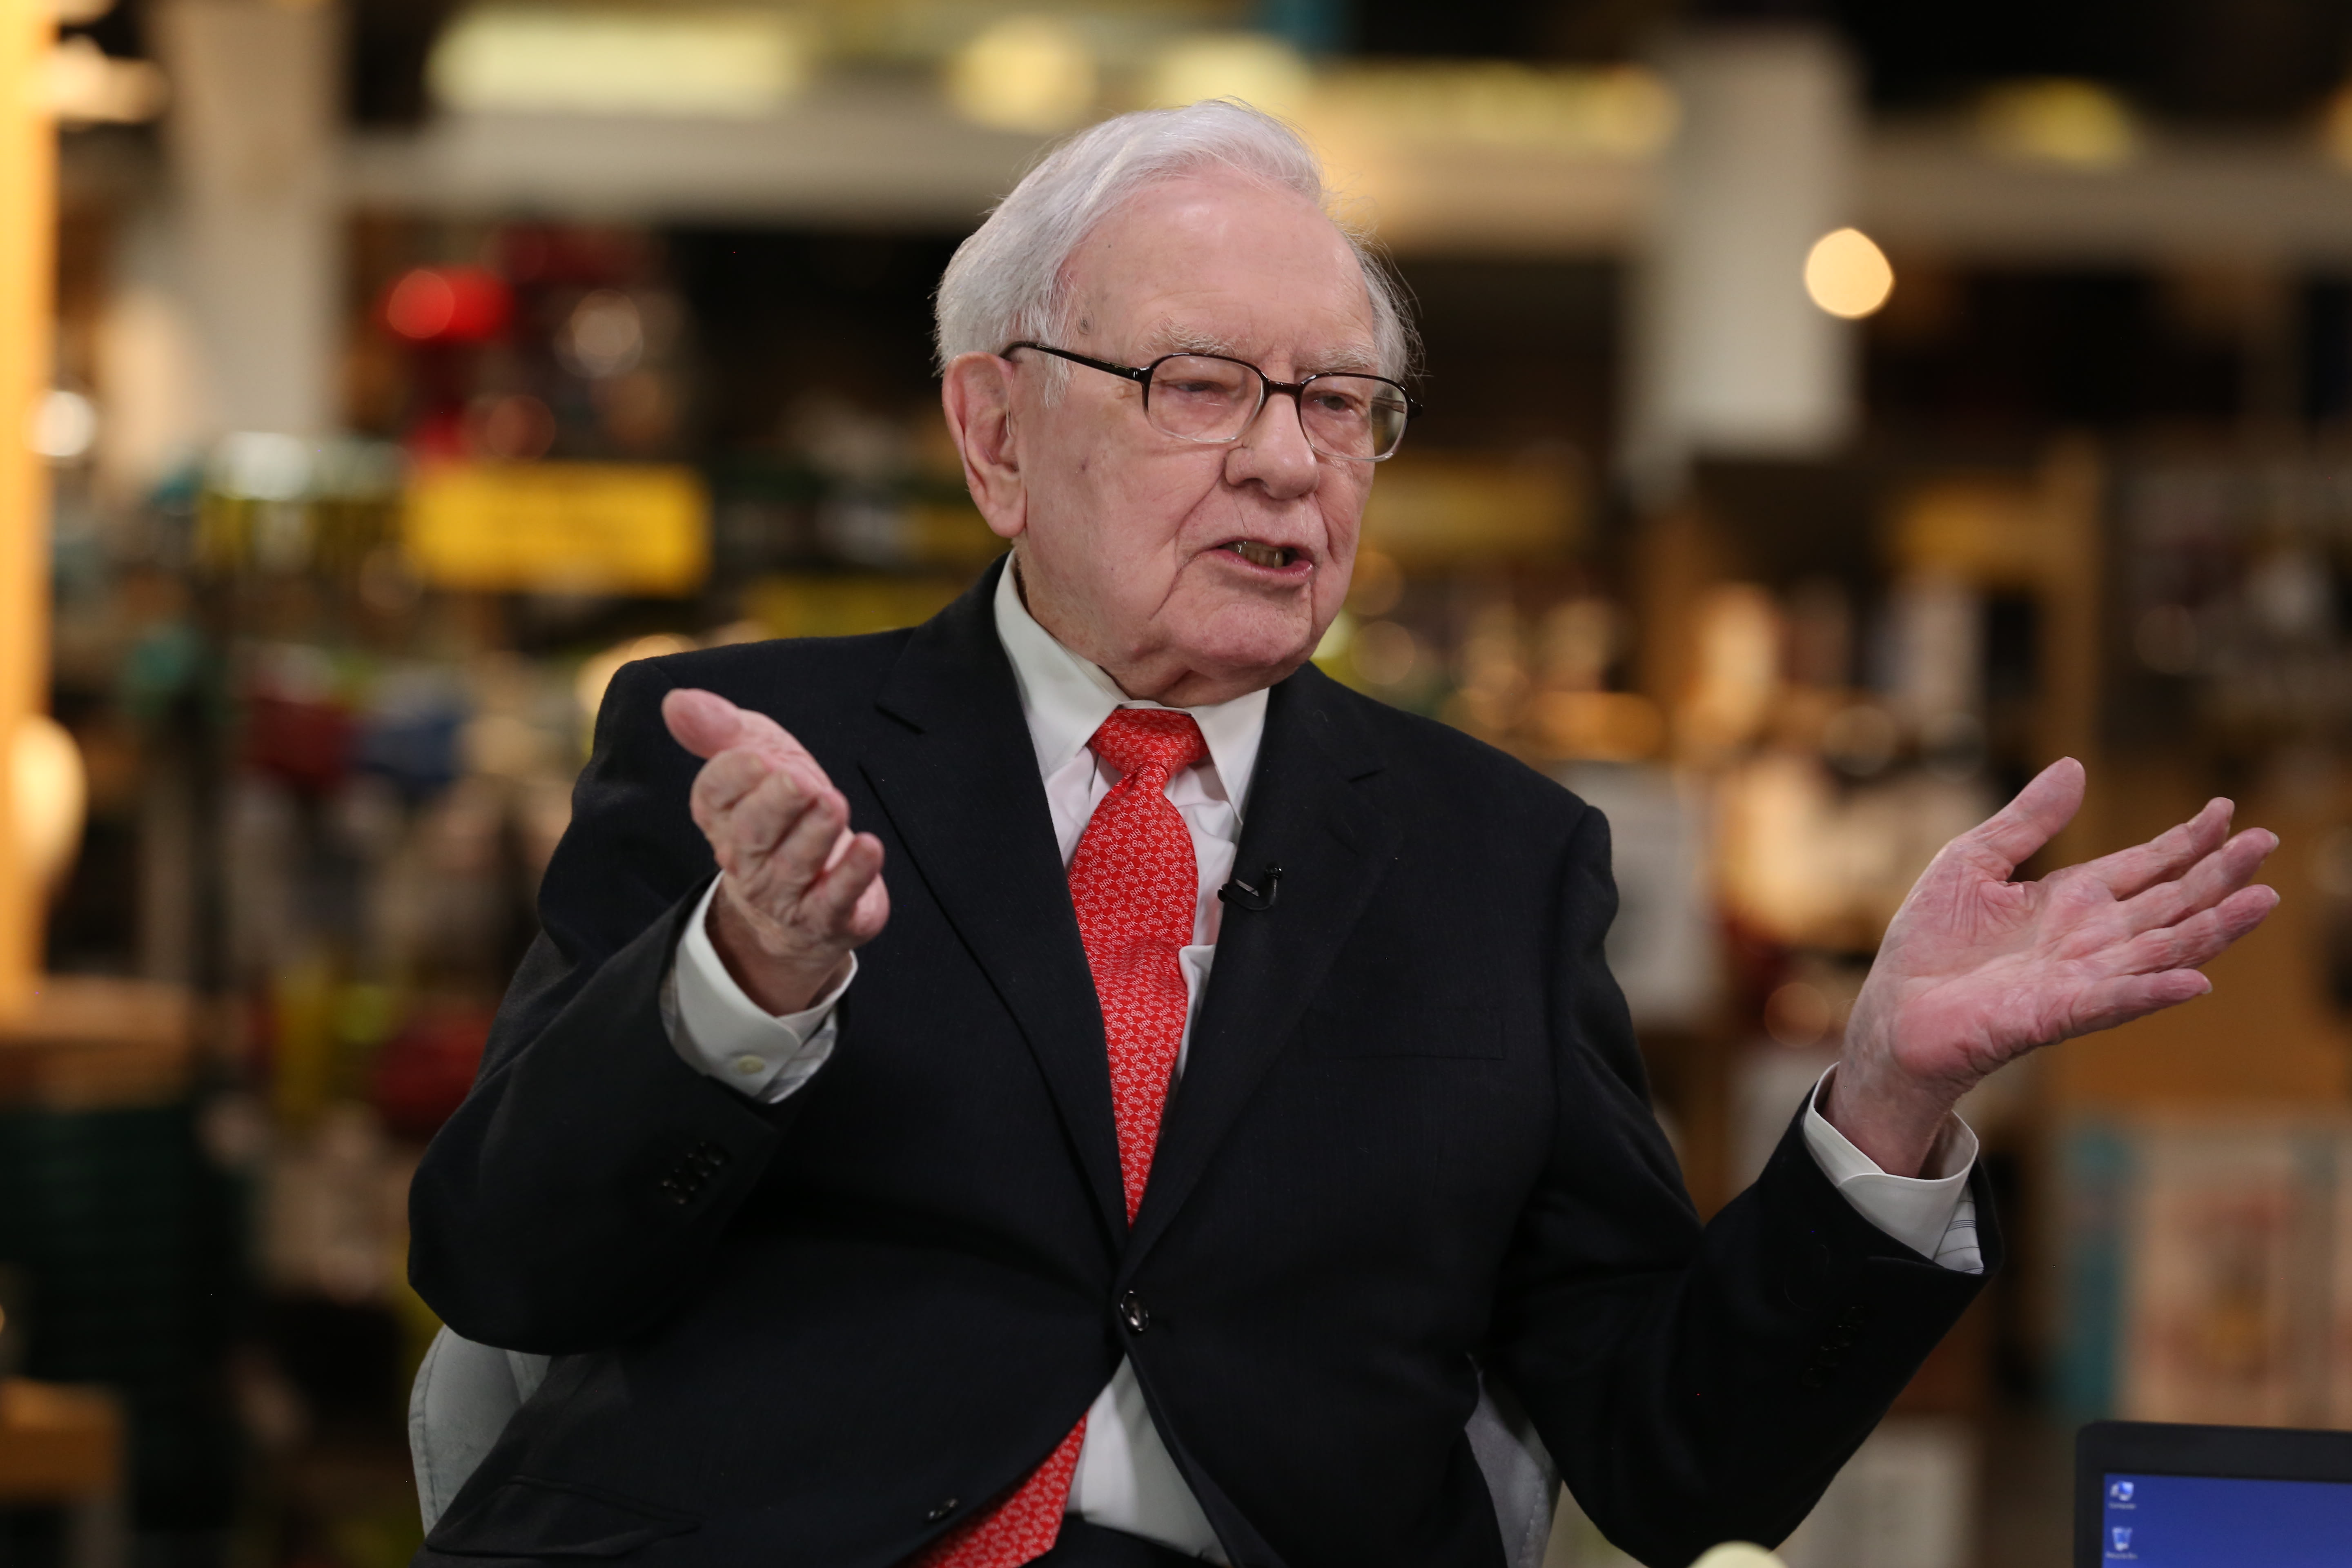 Here are Warren Buffett's biggest stock investments right now